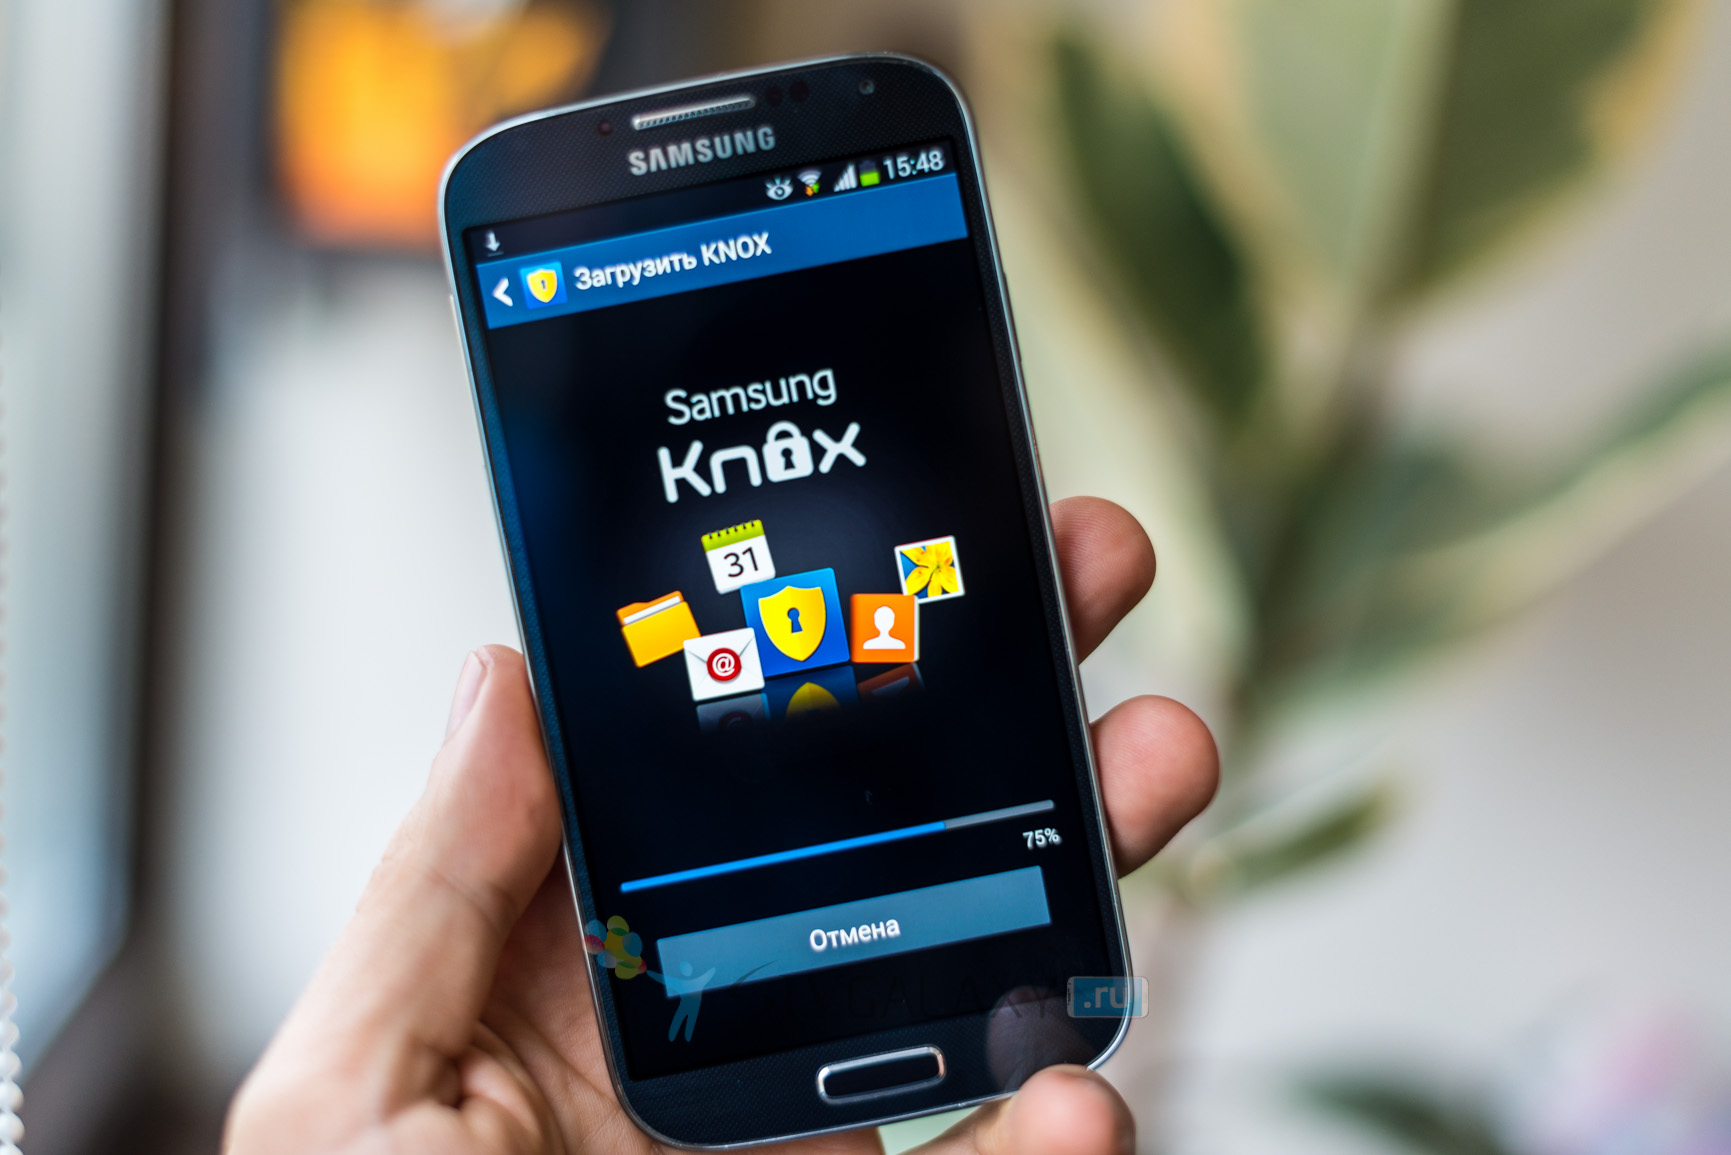 как получить root права на android 4.4.2 samsung galaxy s3